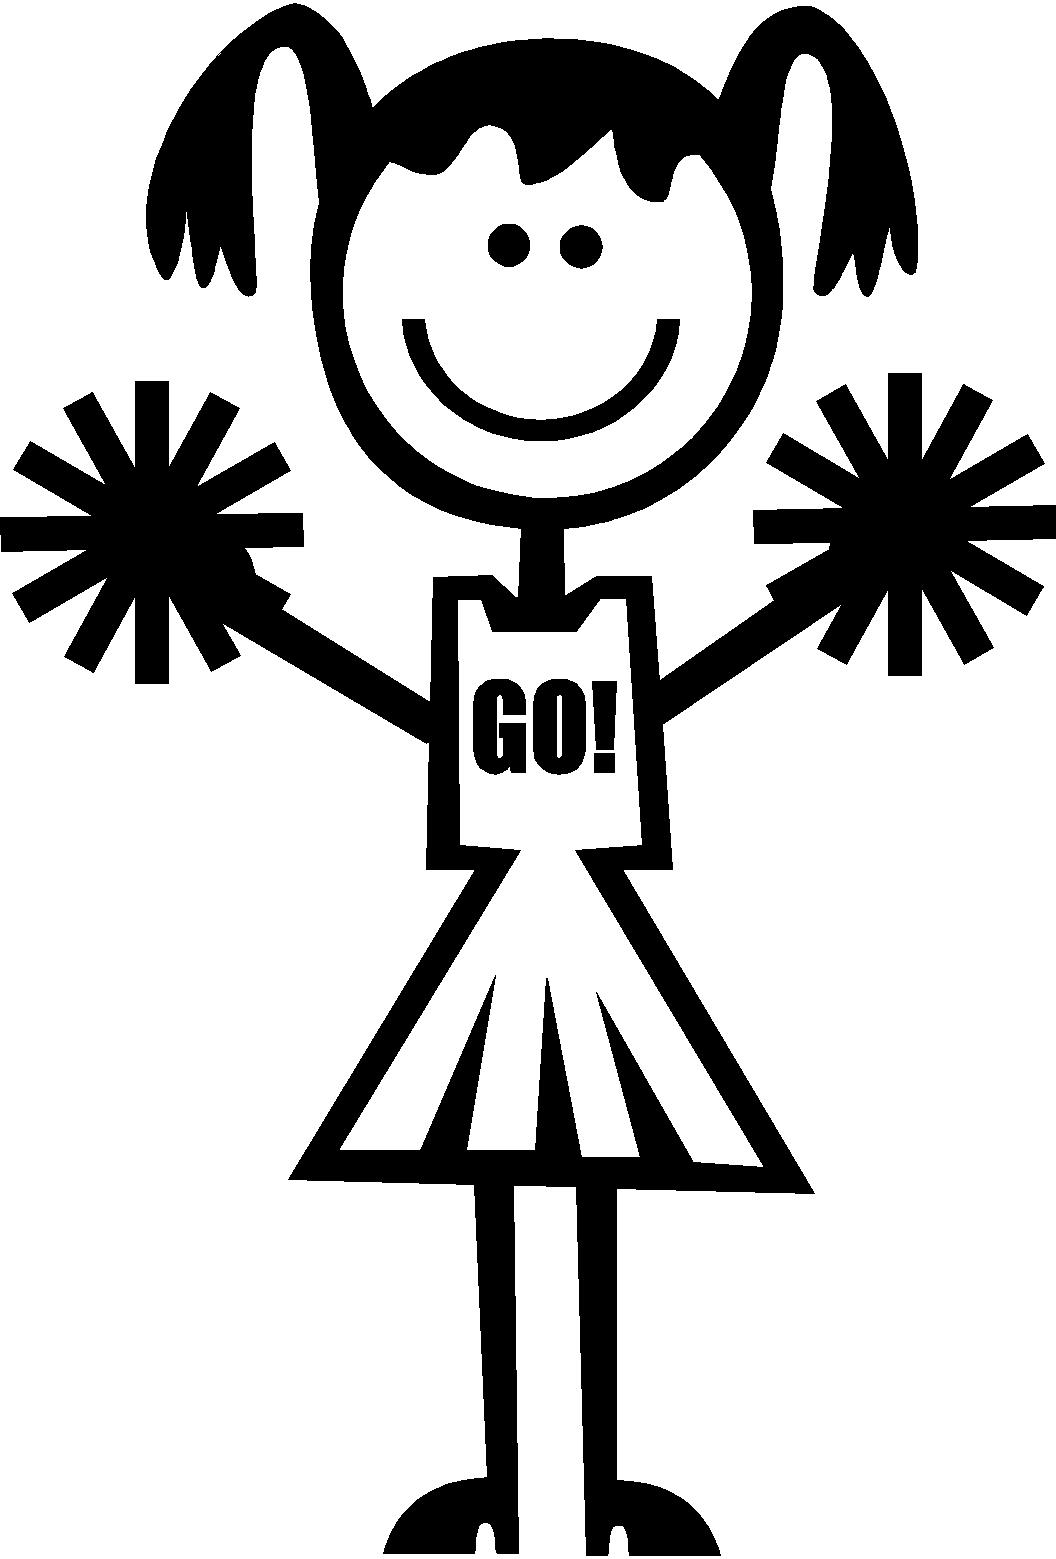 Stick figure cheerleader clipart black and white download Free Black Cheerleader Cliparts, Download Free Clip Art ... black and white download